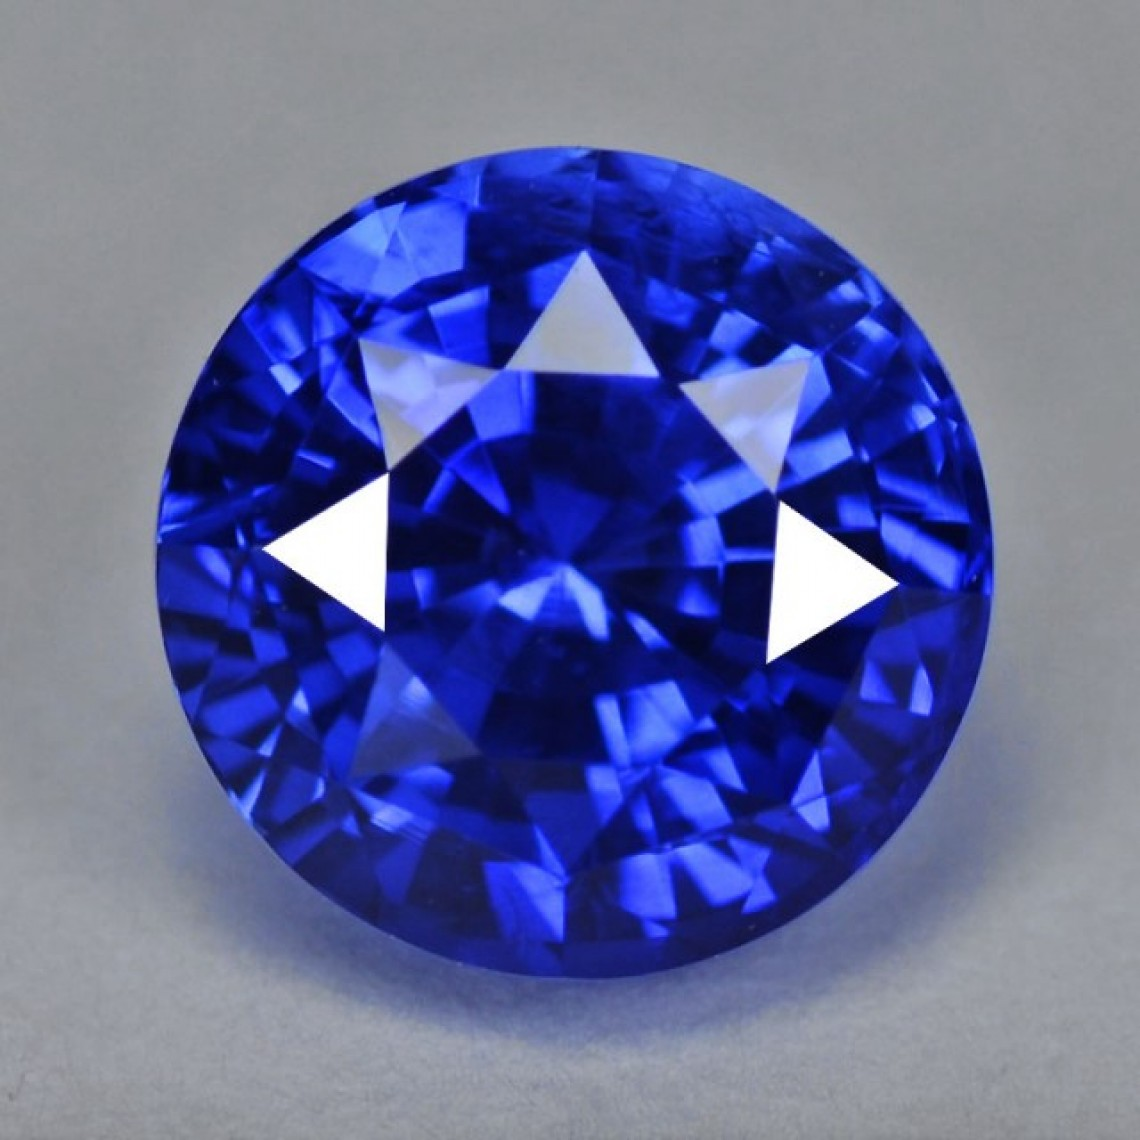 zirconia faceted cabochons sapphire products gemstones item coloured cubic gemstone stones